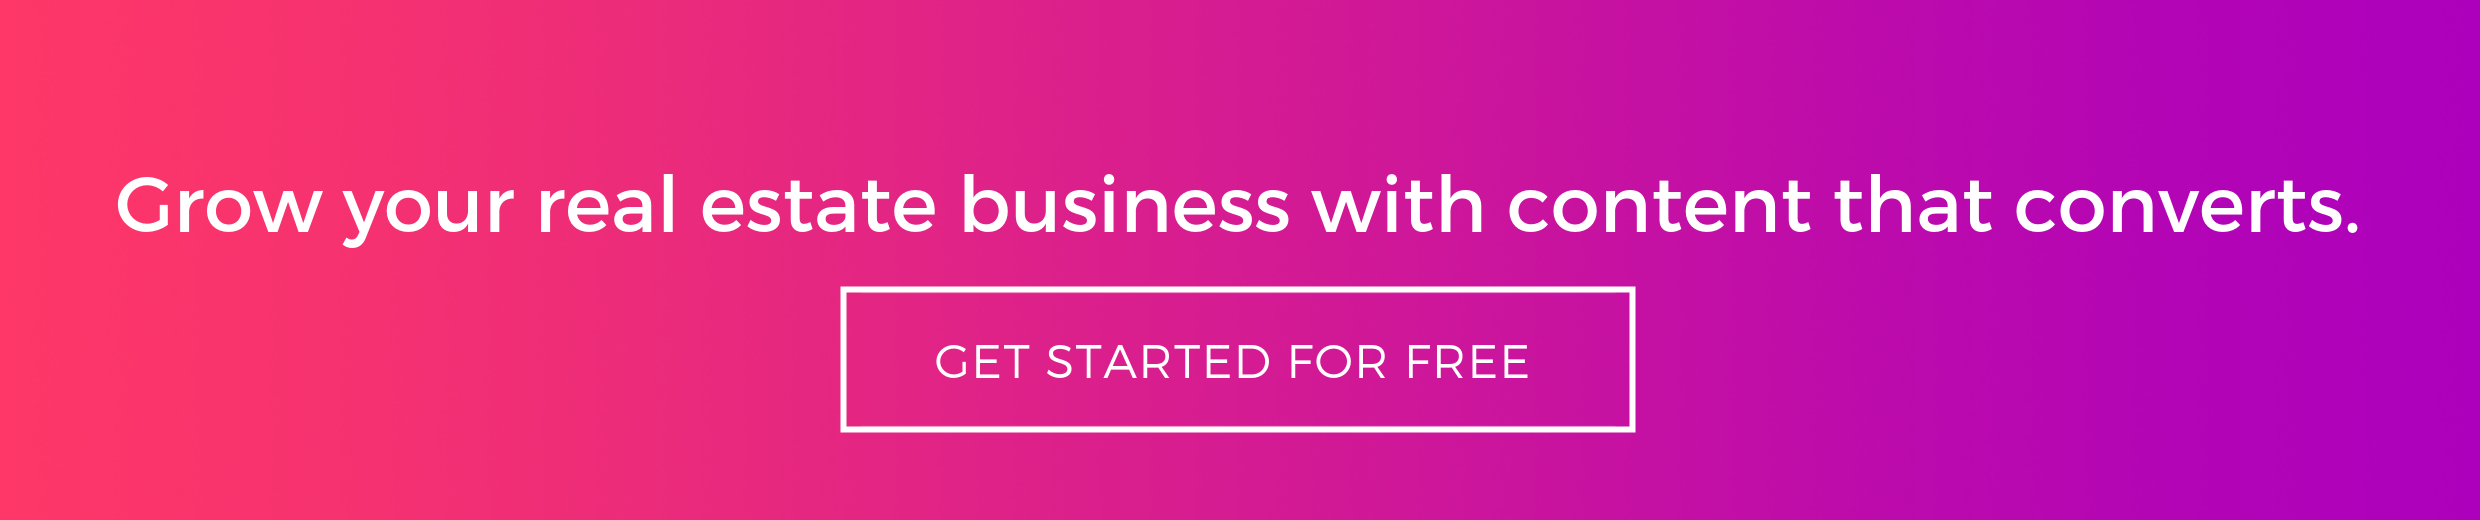 Grow your real estate business with PropertySimple